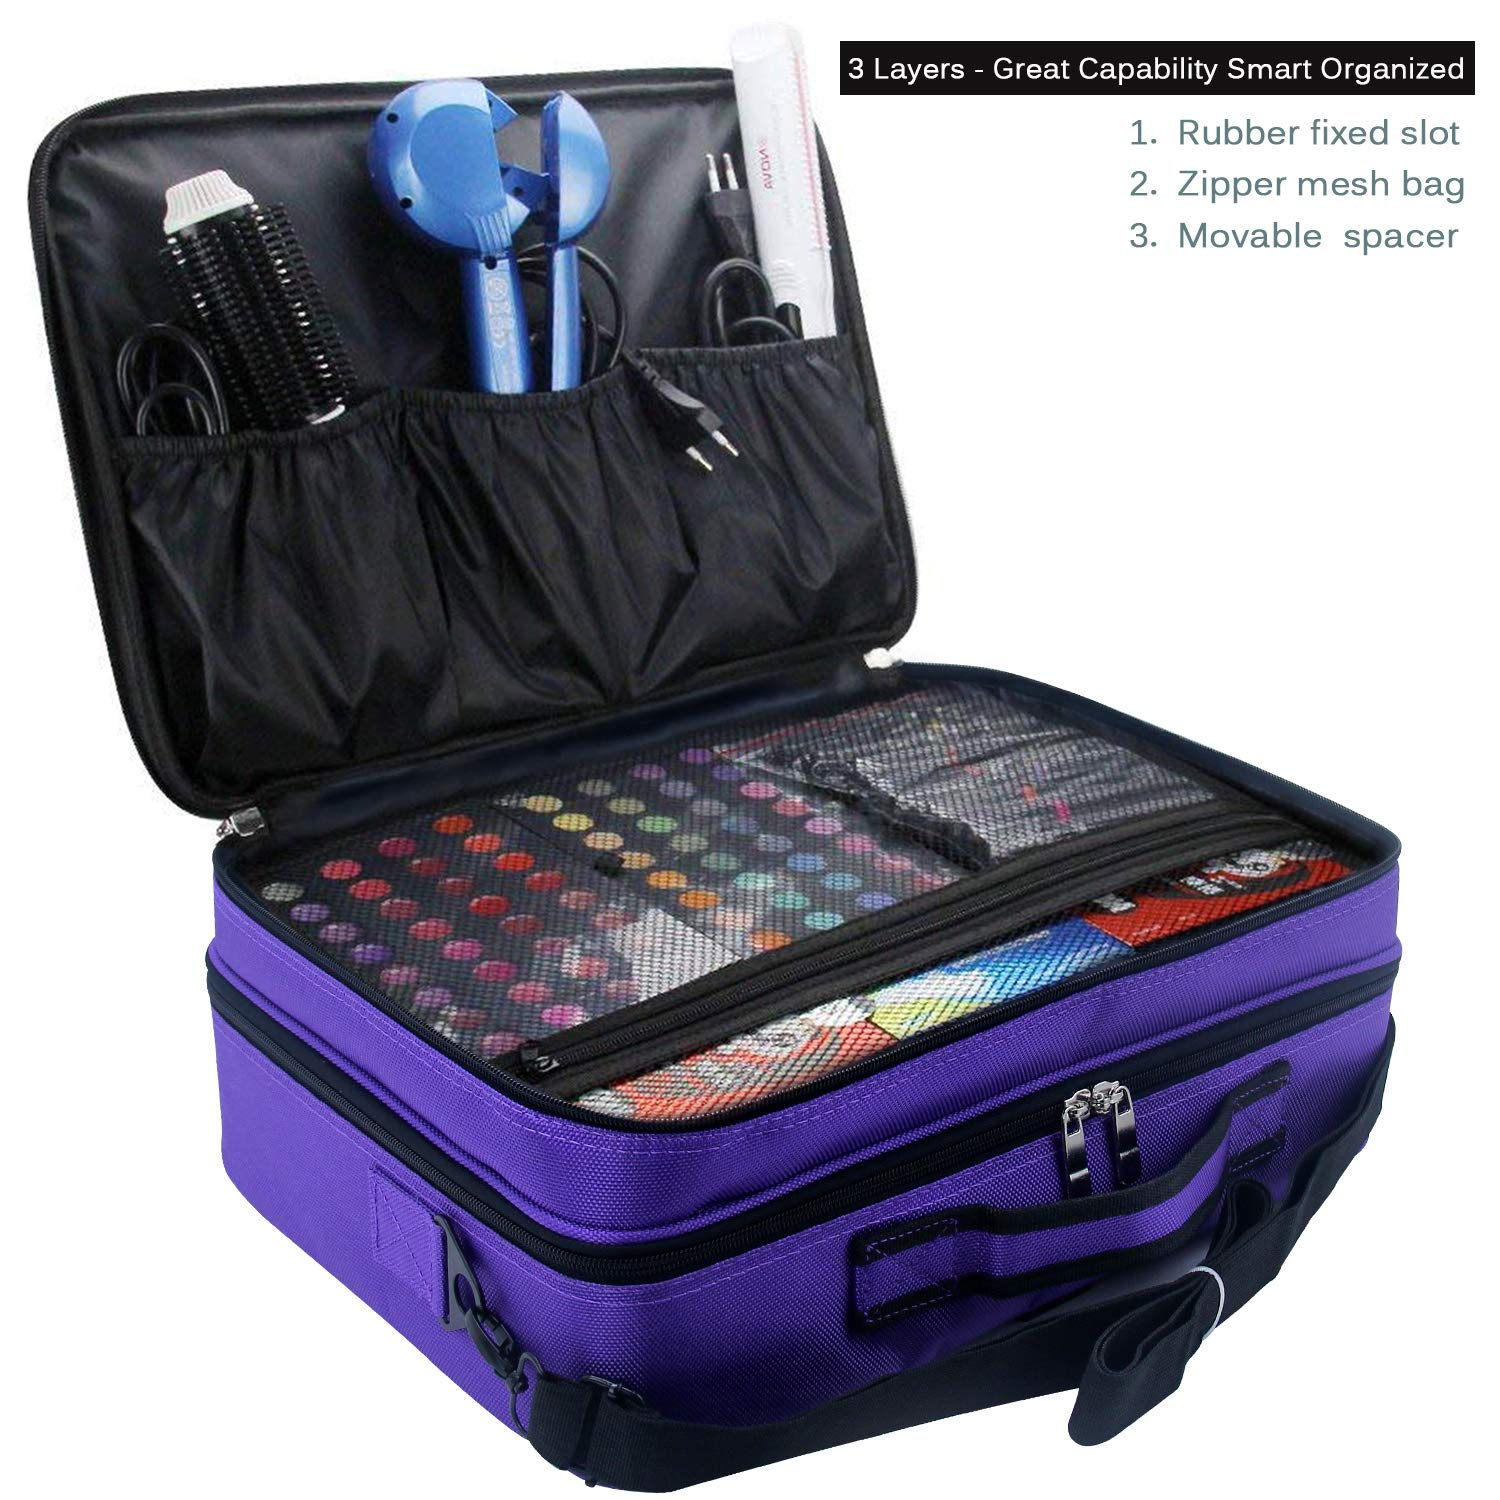 Home · Beauty · Tools   Accessories · Bags   Cases · Train Cases. Share  this product c8daad867c915